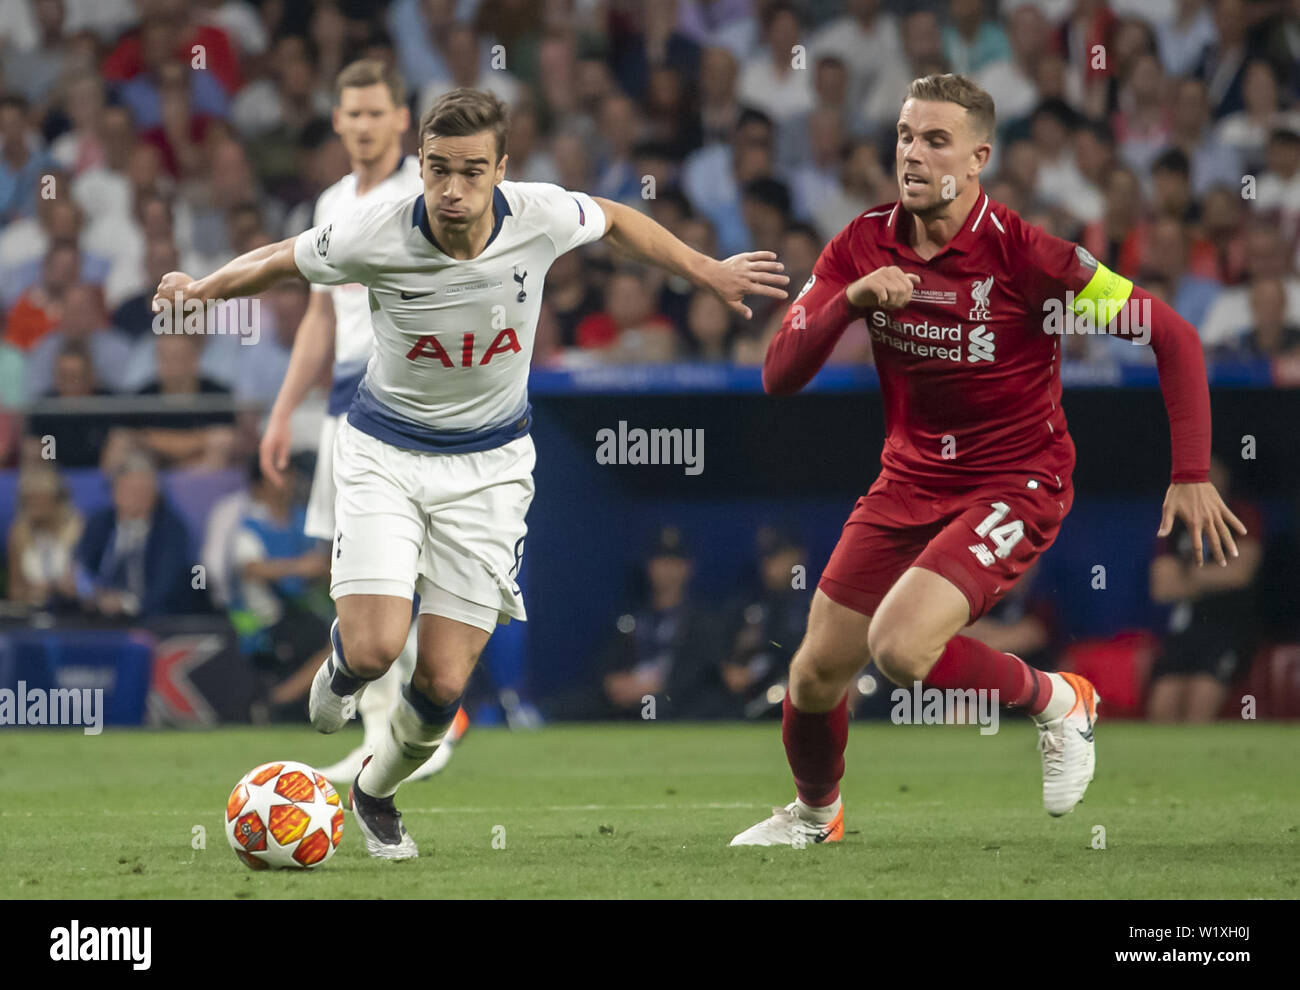 Liverpool Fc V Tottenham Hotspur During The 2019 Champions League Final Held In Madrid Spain Liverpool